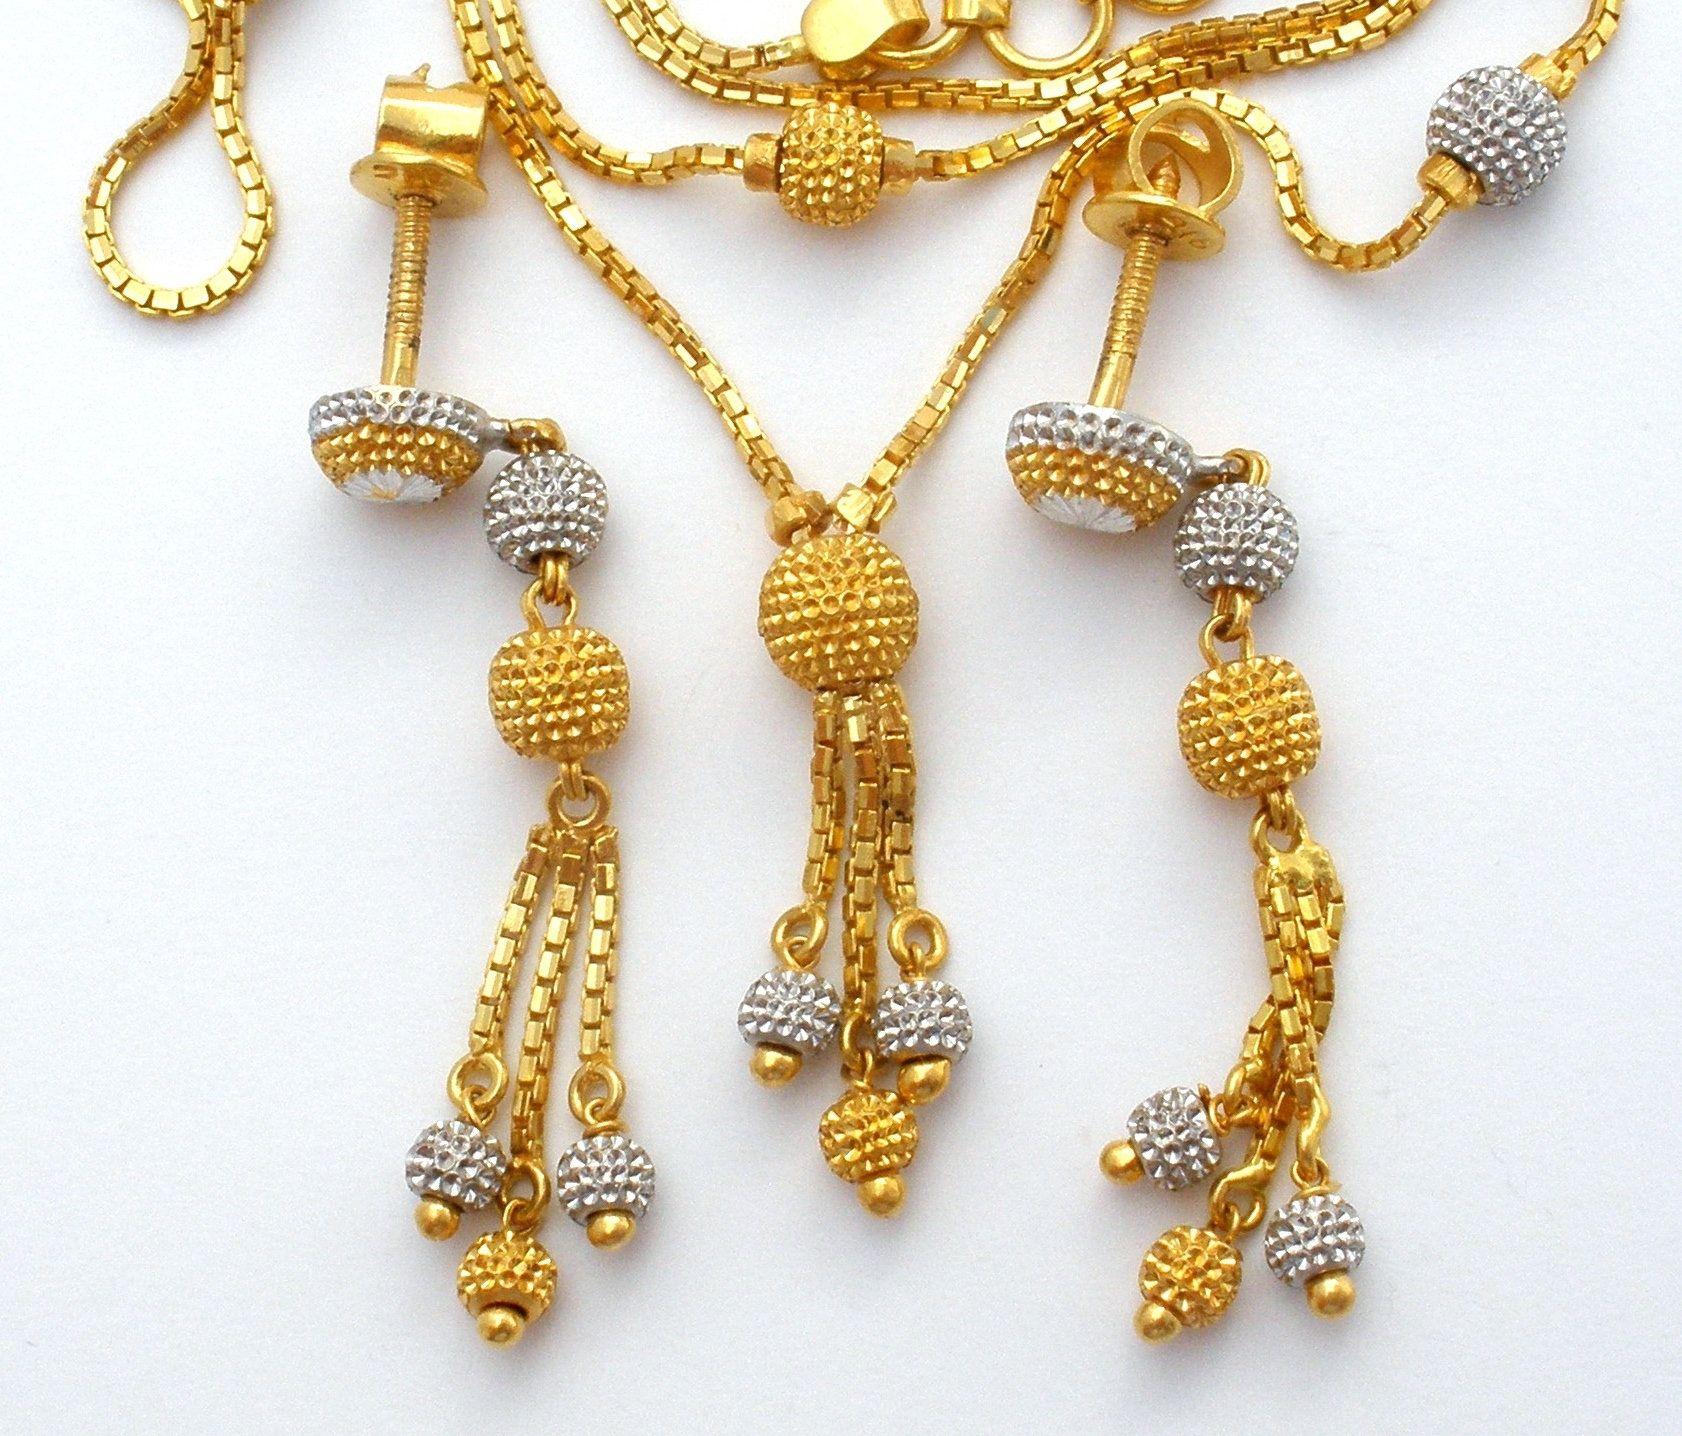 22k Gold Necklace Set Yellow White Gold Bead Necklace Earrings